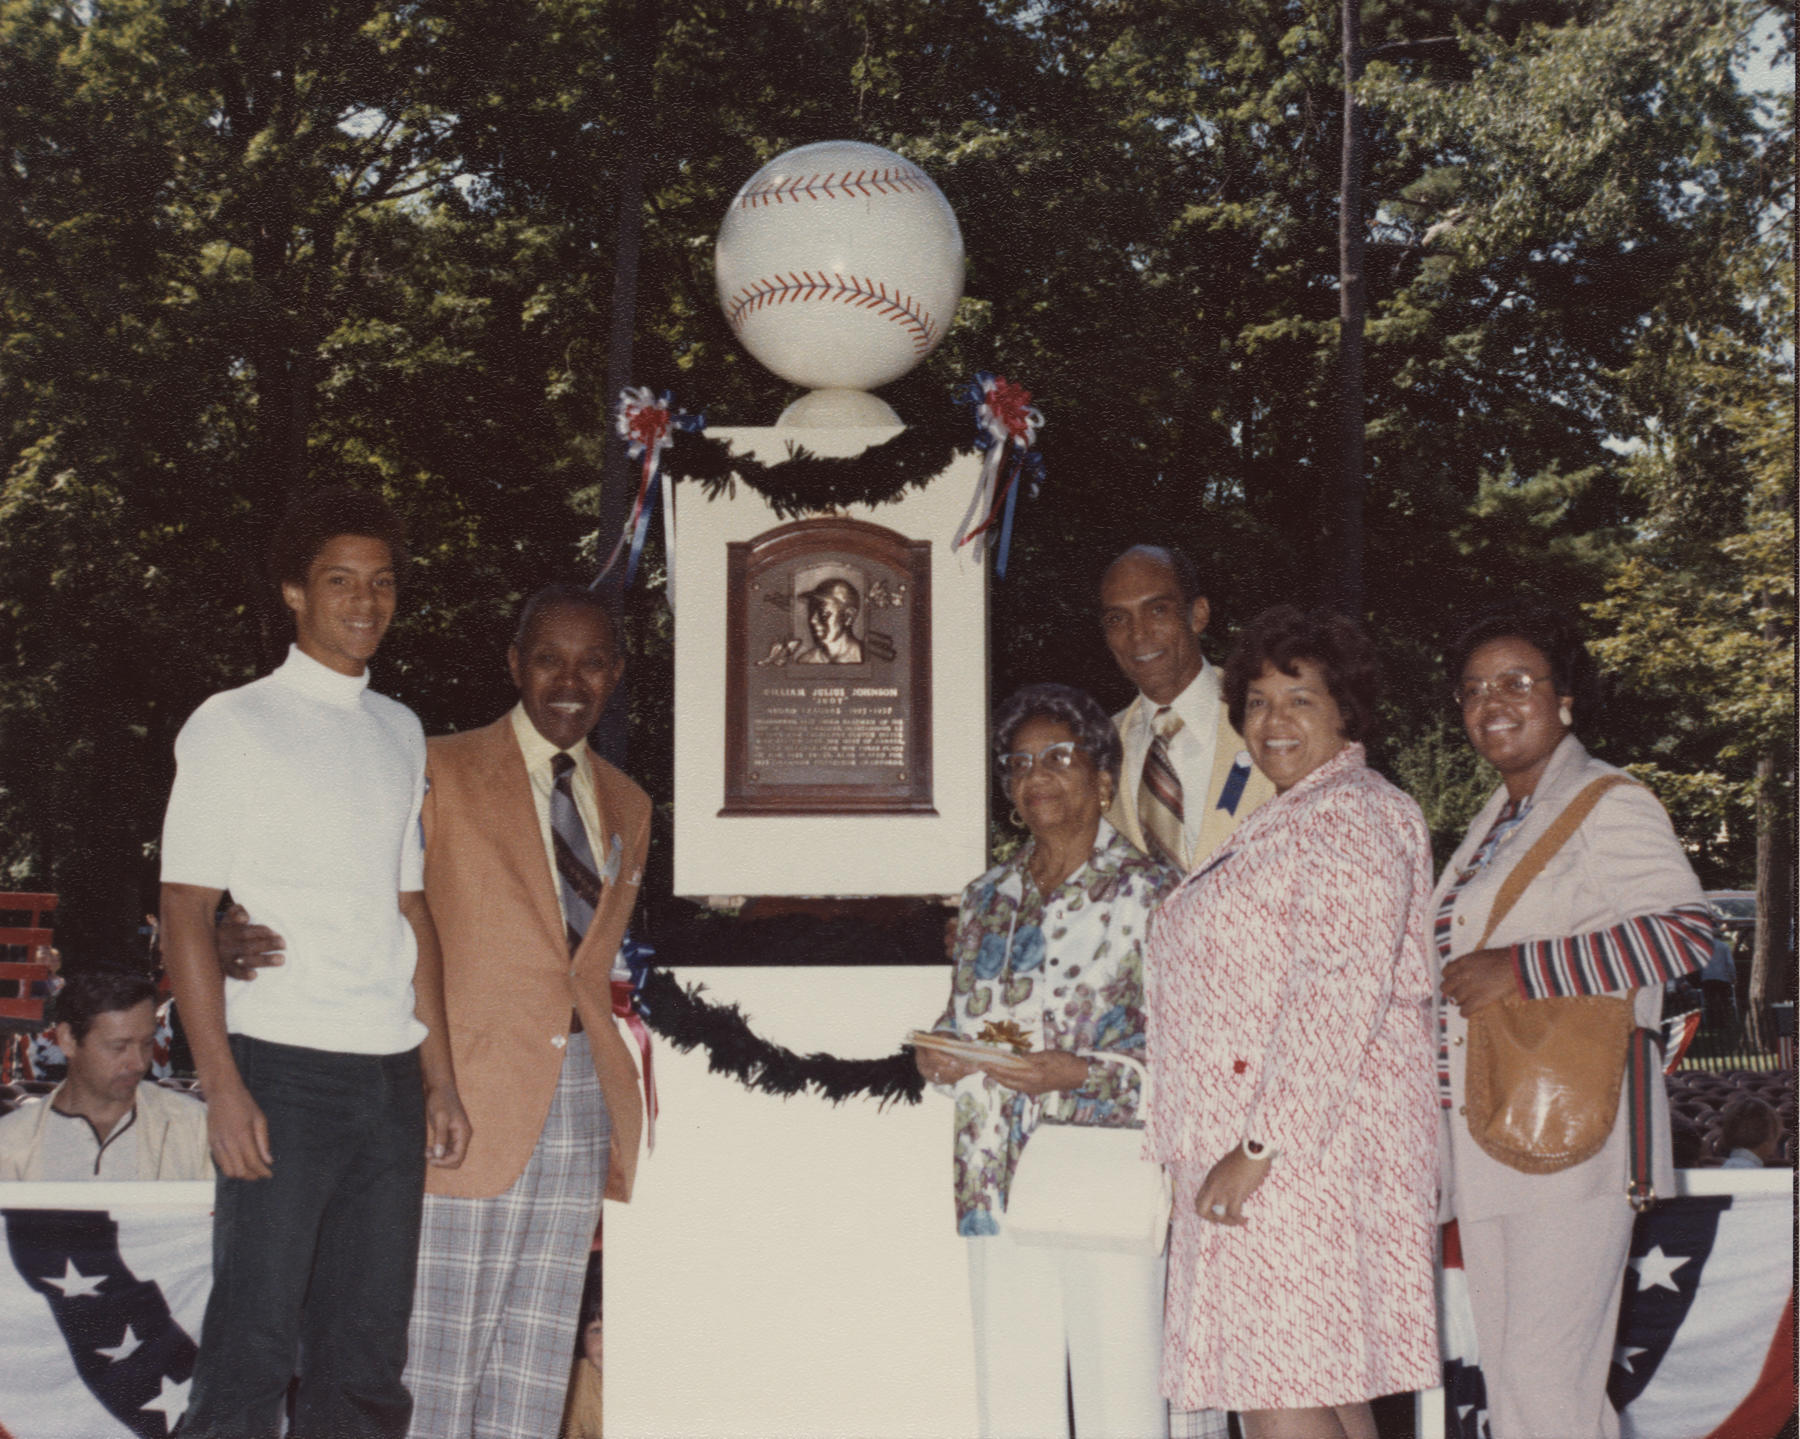 Judy Johnson standing in front of his plaque with family members. BL-549.2012.25 (National Baseball Hall of Fame Library)